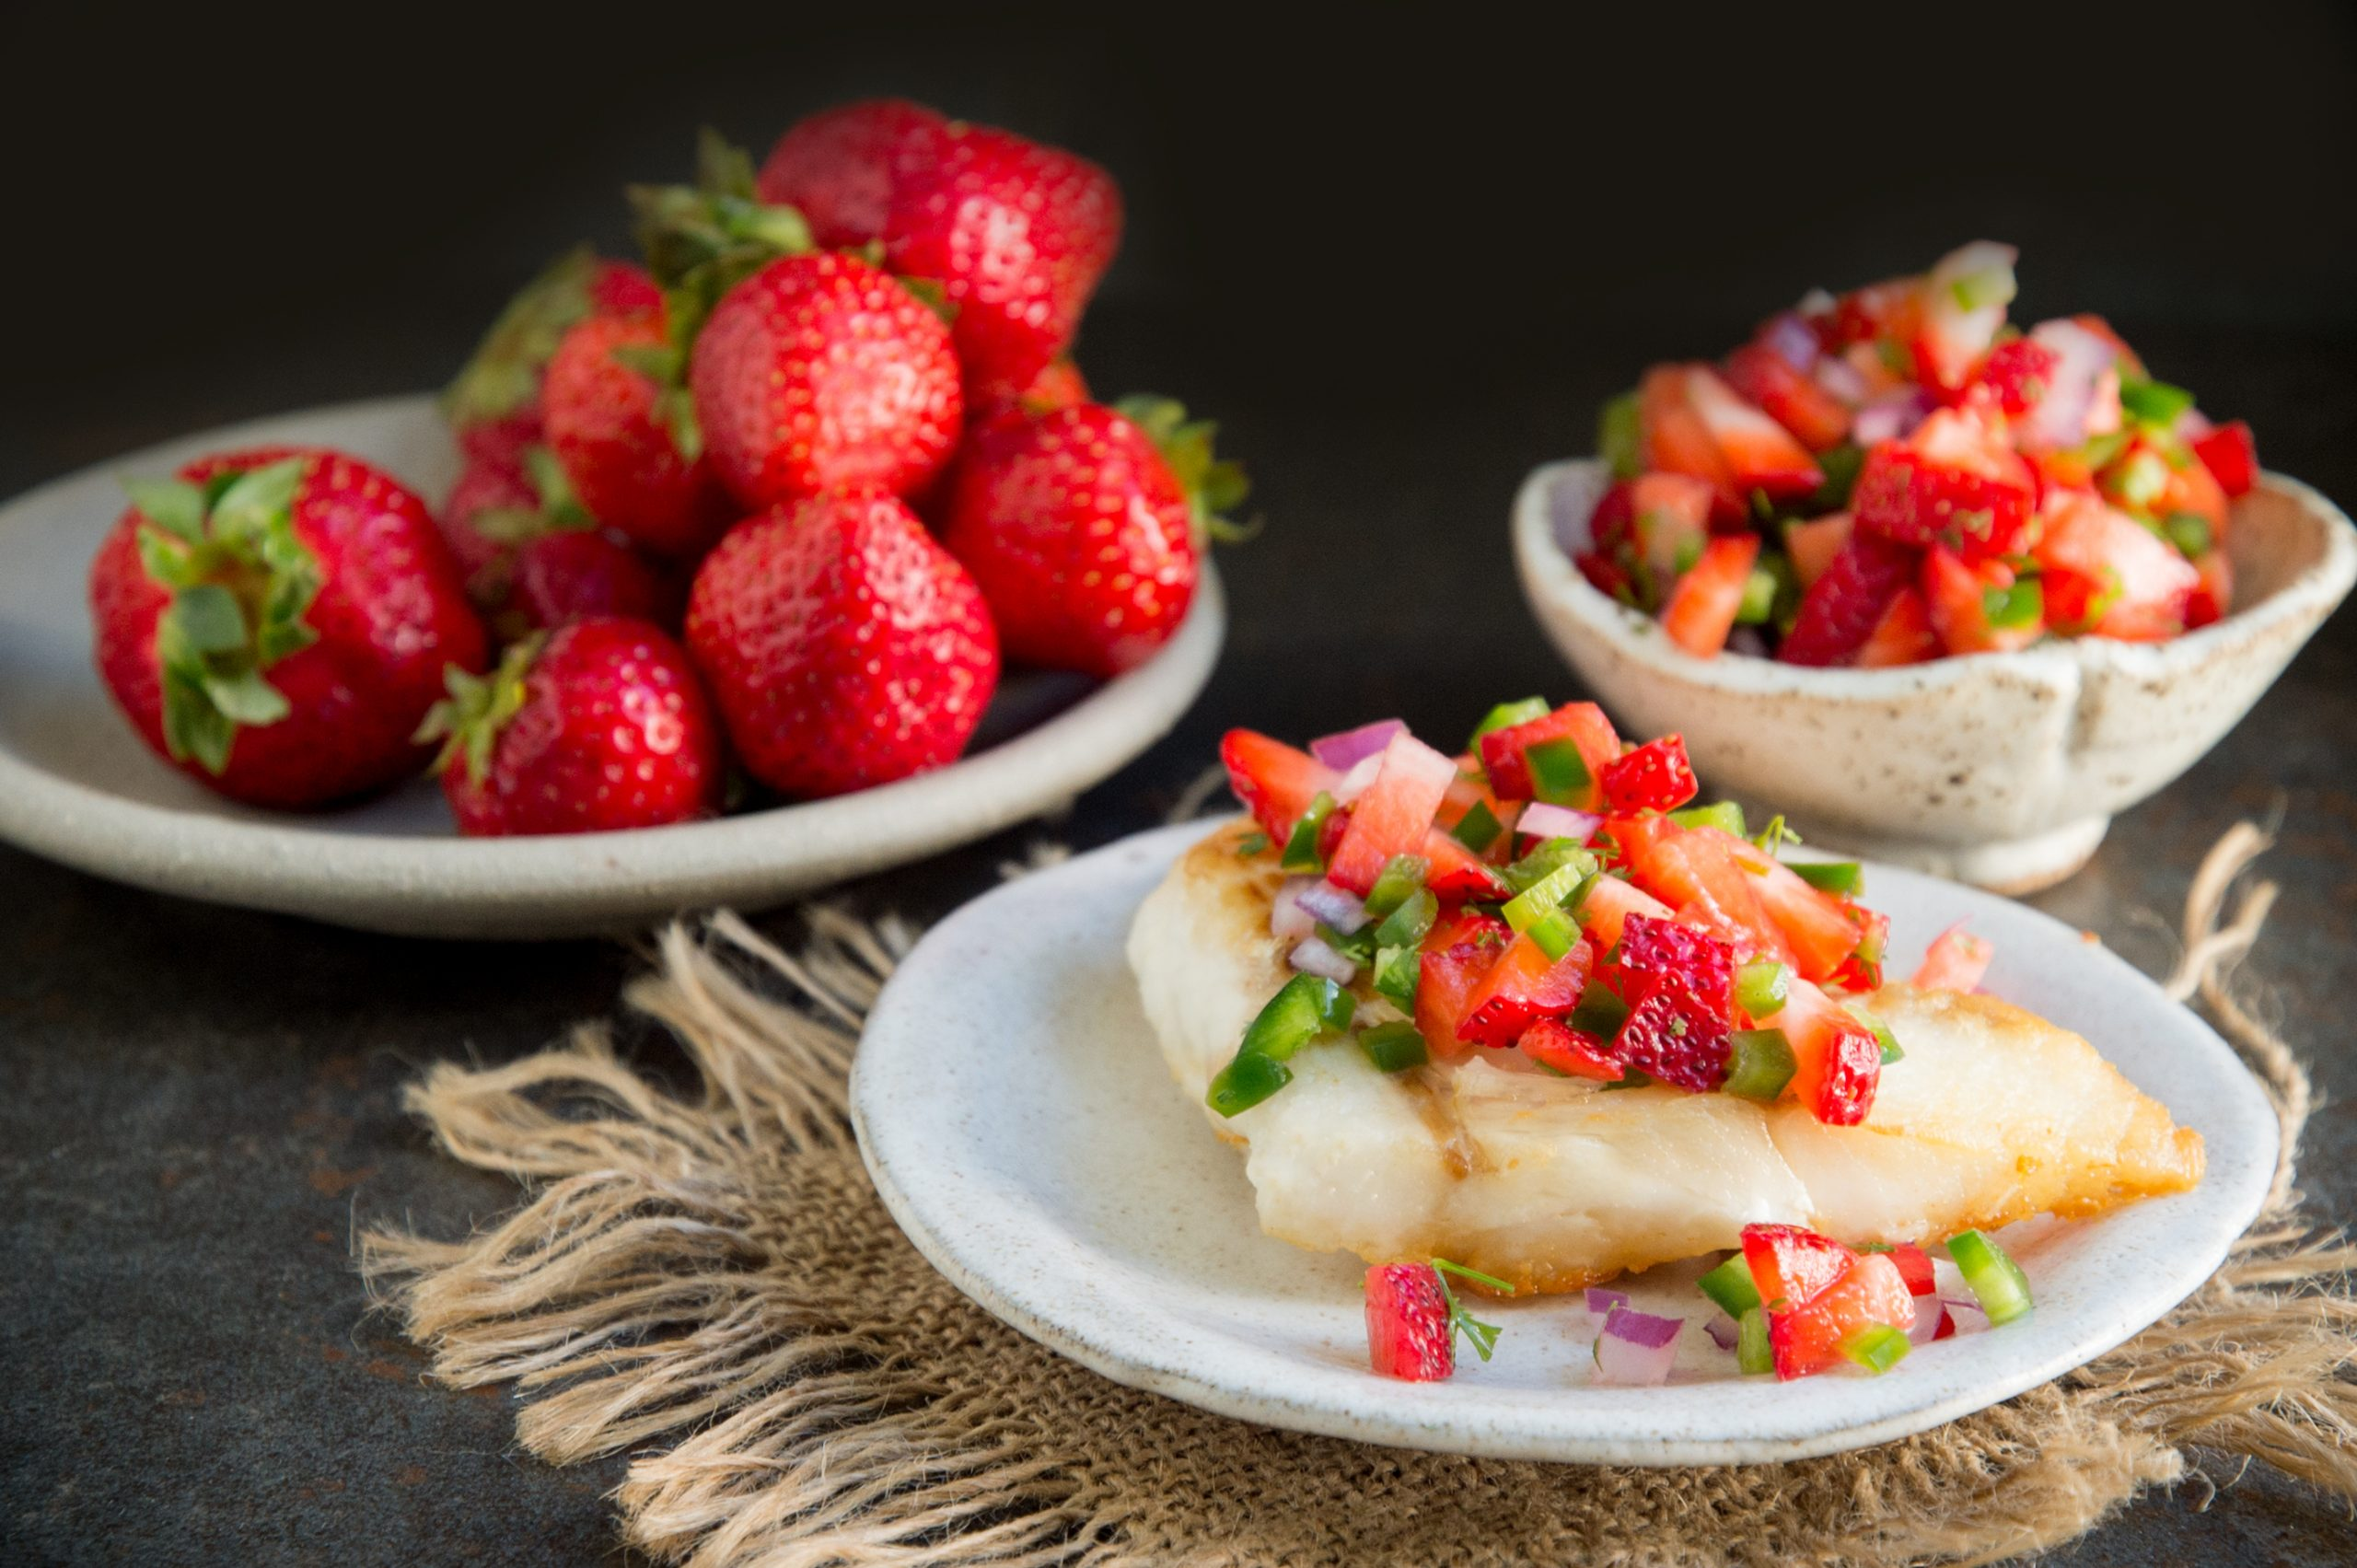 Pan Fried Fish Fillets with Strawberry Salsa